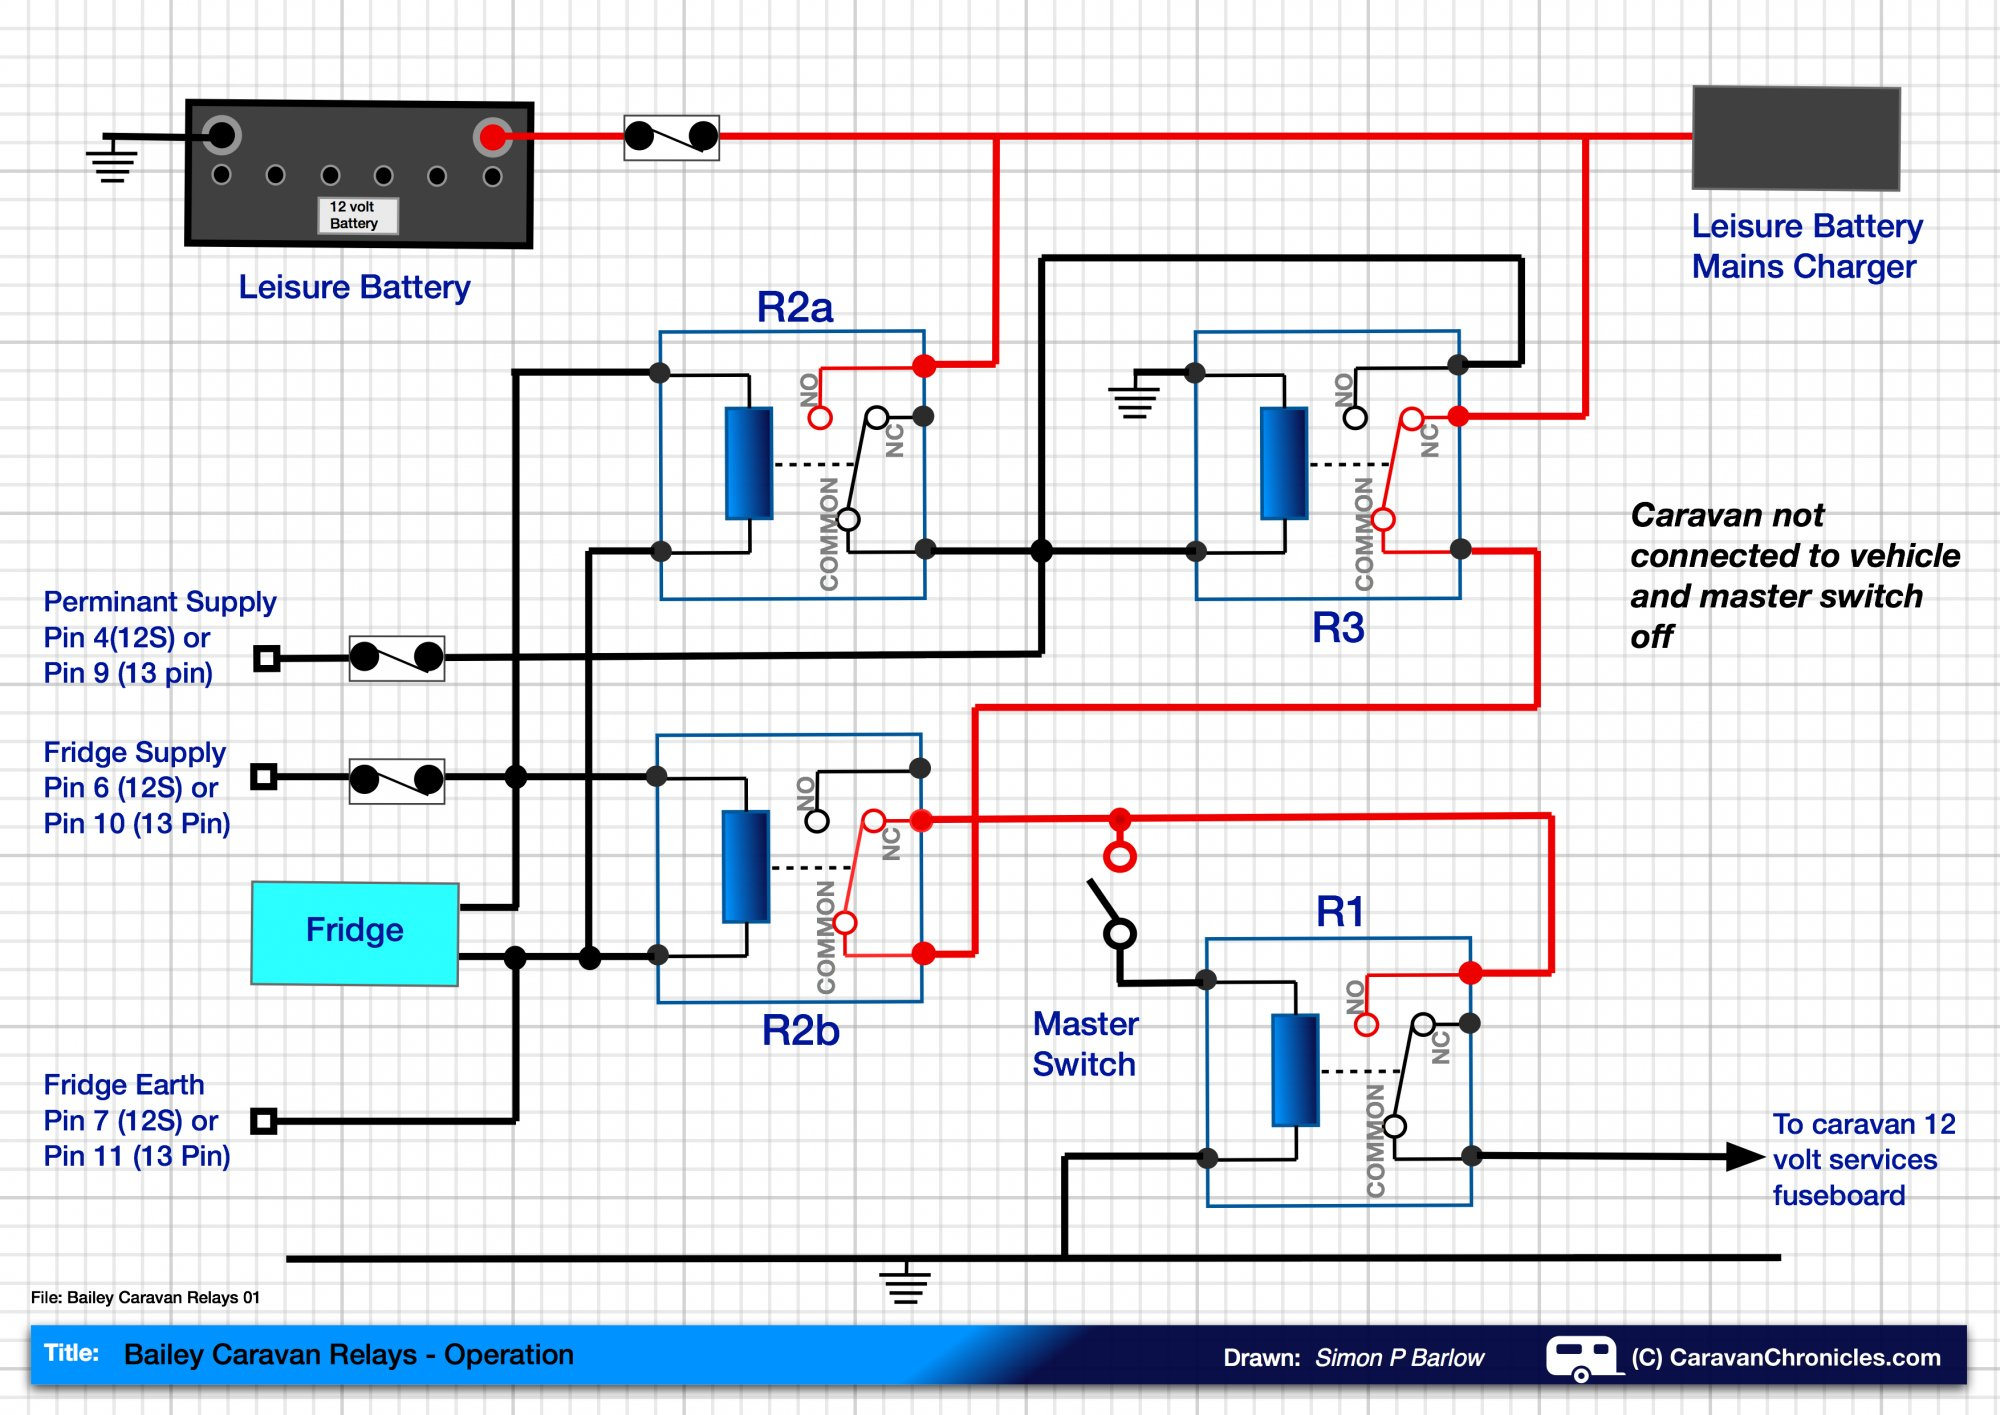 SL_2383] Wiring Diagram Rcd 240V For A Caravan Wiring DiagramDict Syny Expe Nful Mohammedshrine Librar Wiring 101